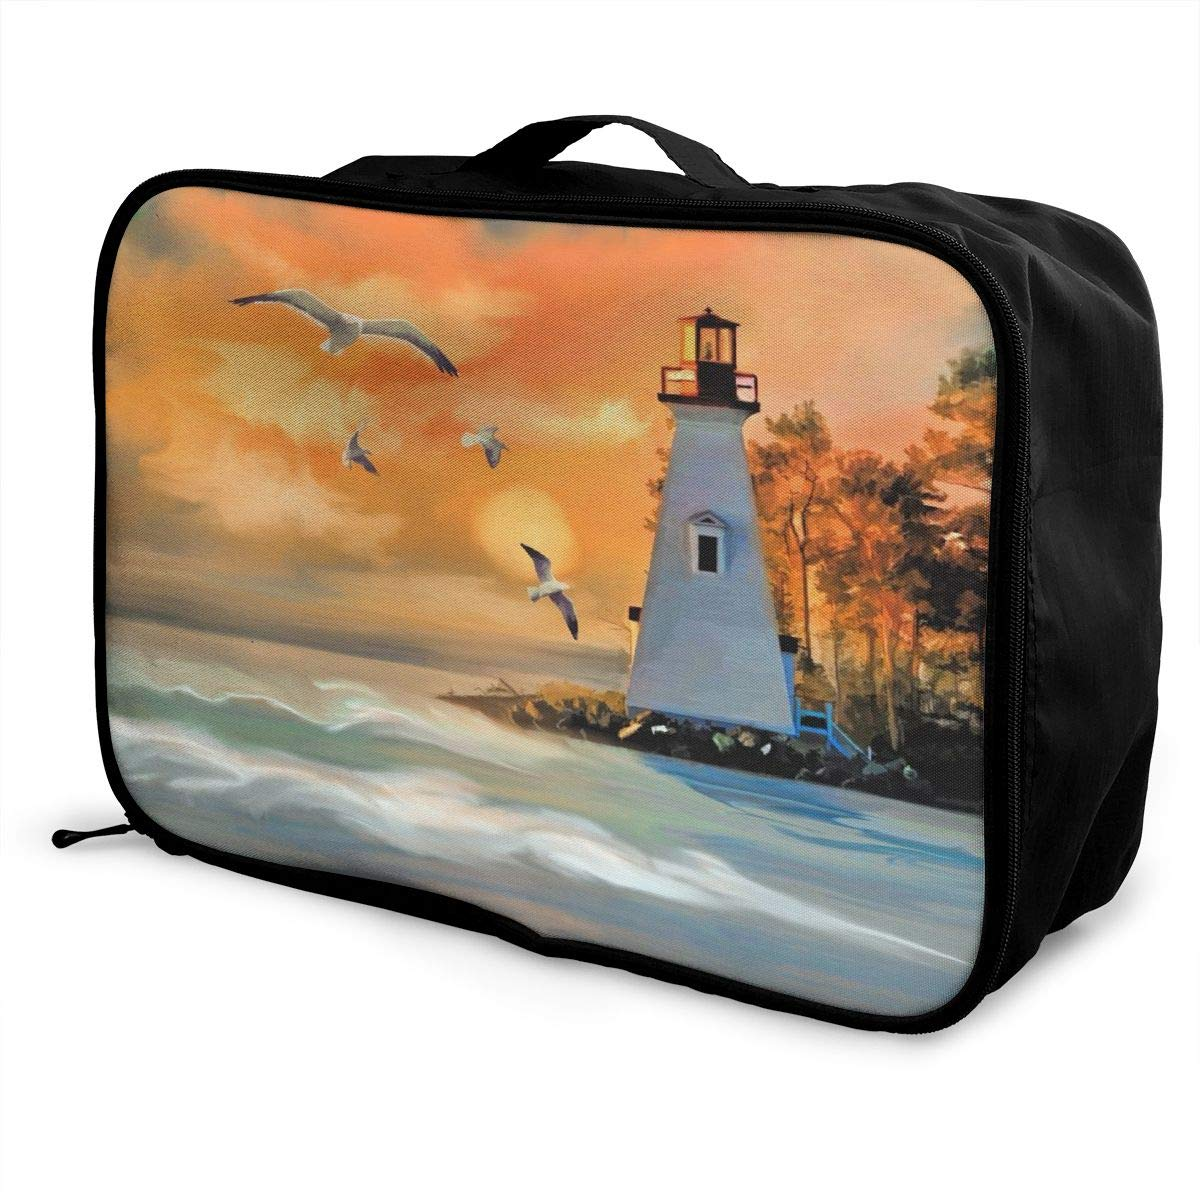 Art Painting Seagull Lighthouse Ocean Travel Lightweight Waterproof Foldable Storage Carry Luggage Large Capacity Portable Luggage Bag Duffel Bag